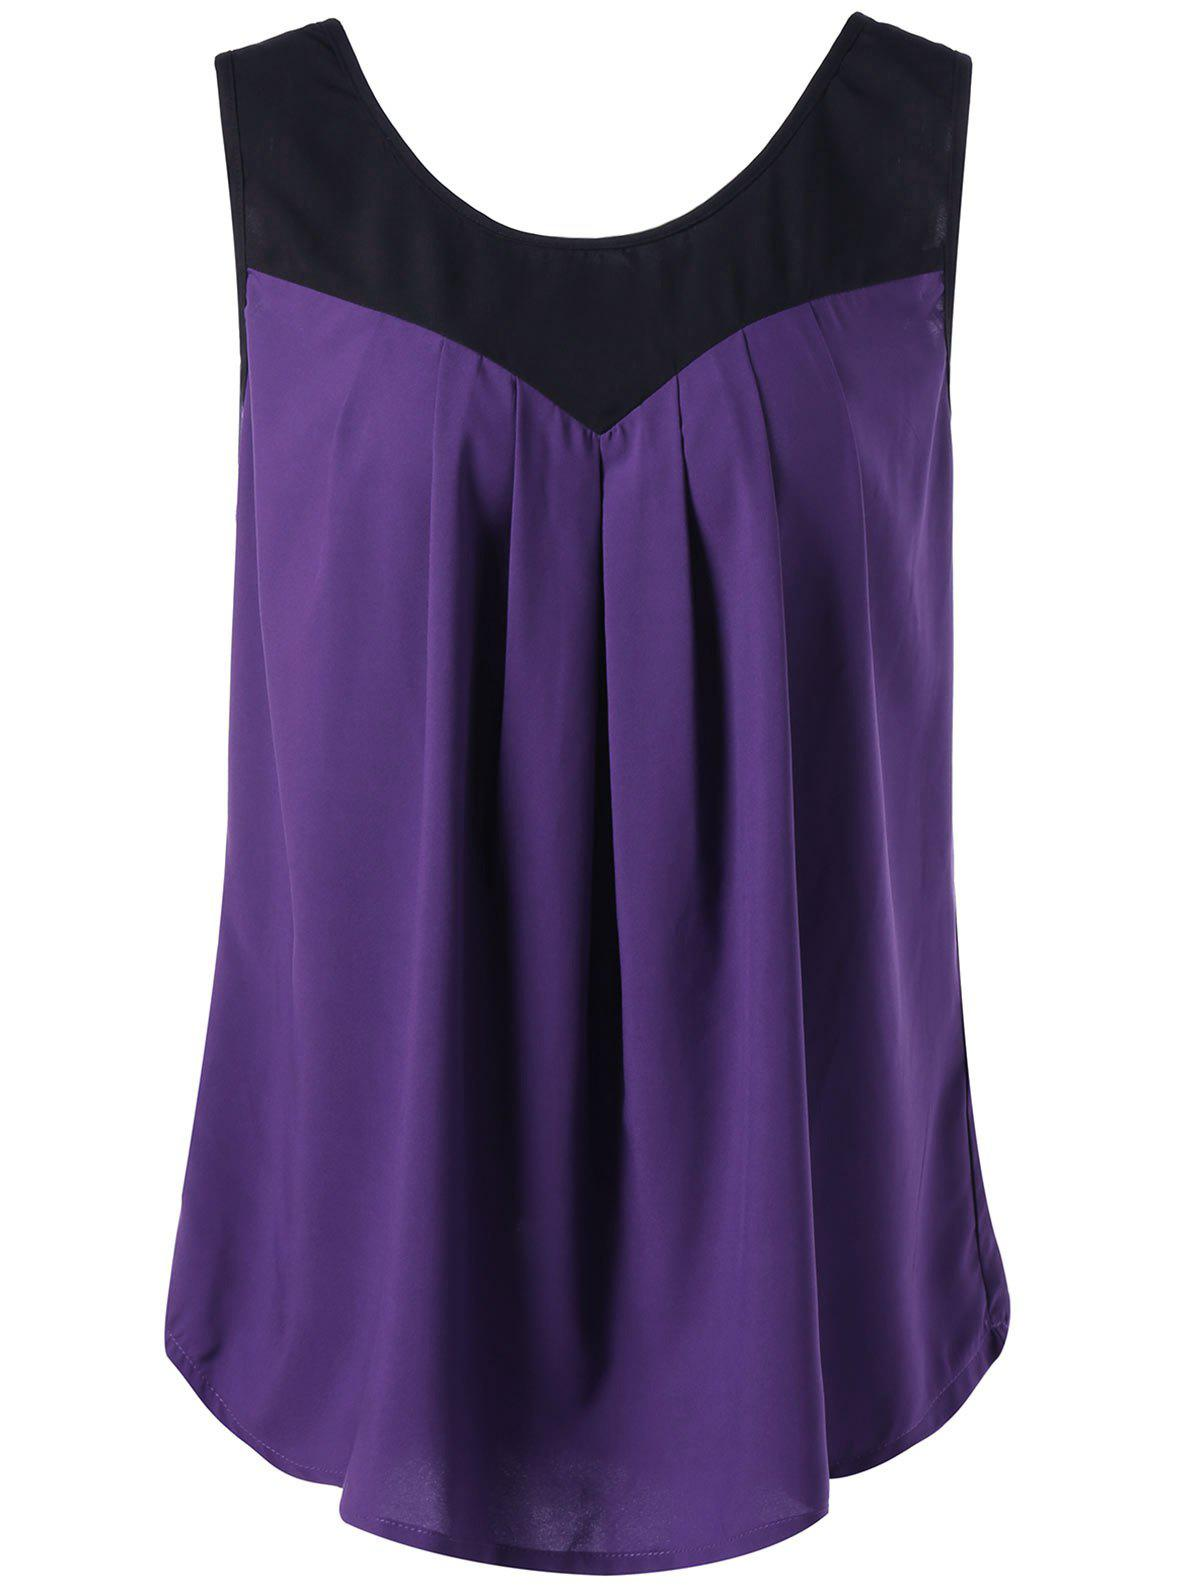 Curved Plus Size Two Tone Tank TopWOMEN<br><br>Size: XL; Color: PURPLE; Material: Polyester; Shirt Length: Regular; Sleeve Length: Sleeveless; Collar: Round Neck; Style: Casual; Season: Summer; Pattern Type: Solid; Weight: 0.3000kg; Package Contents: 1 x Tank Top;